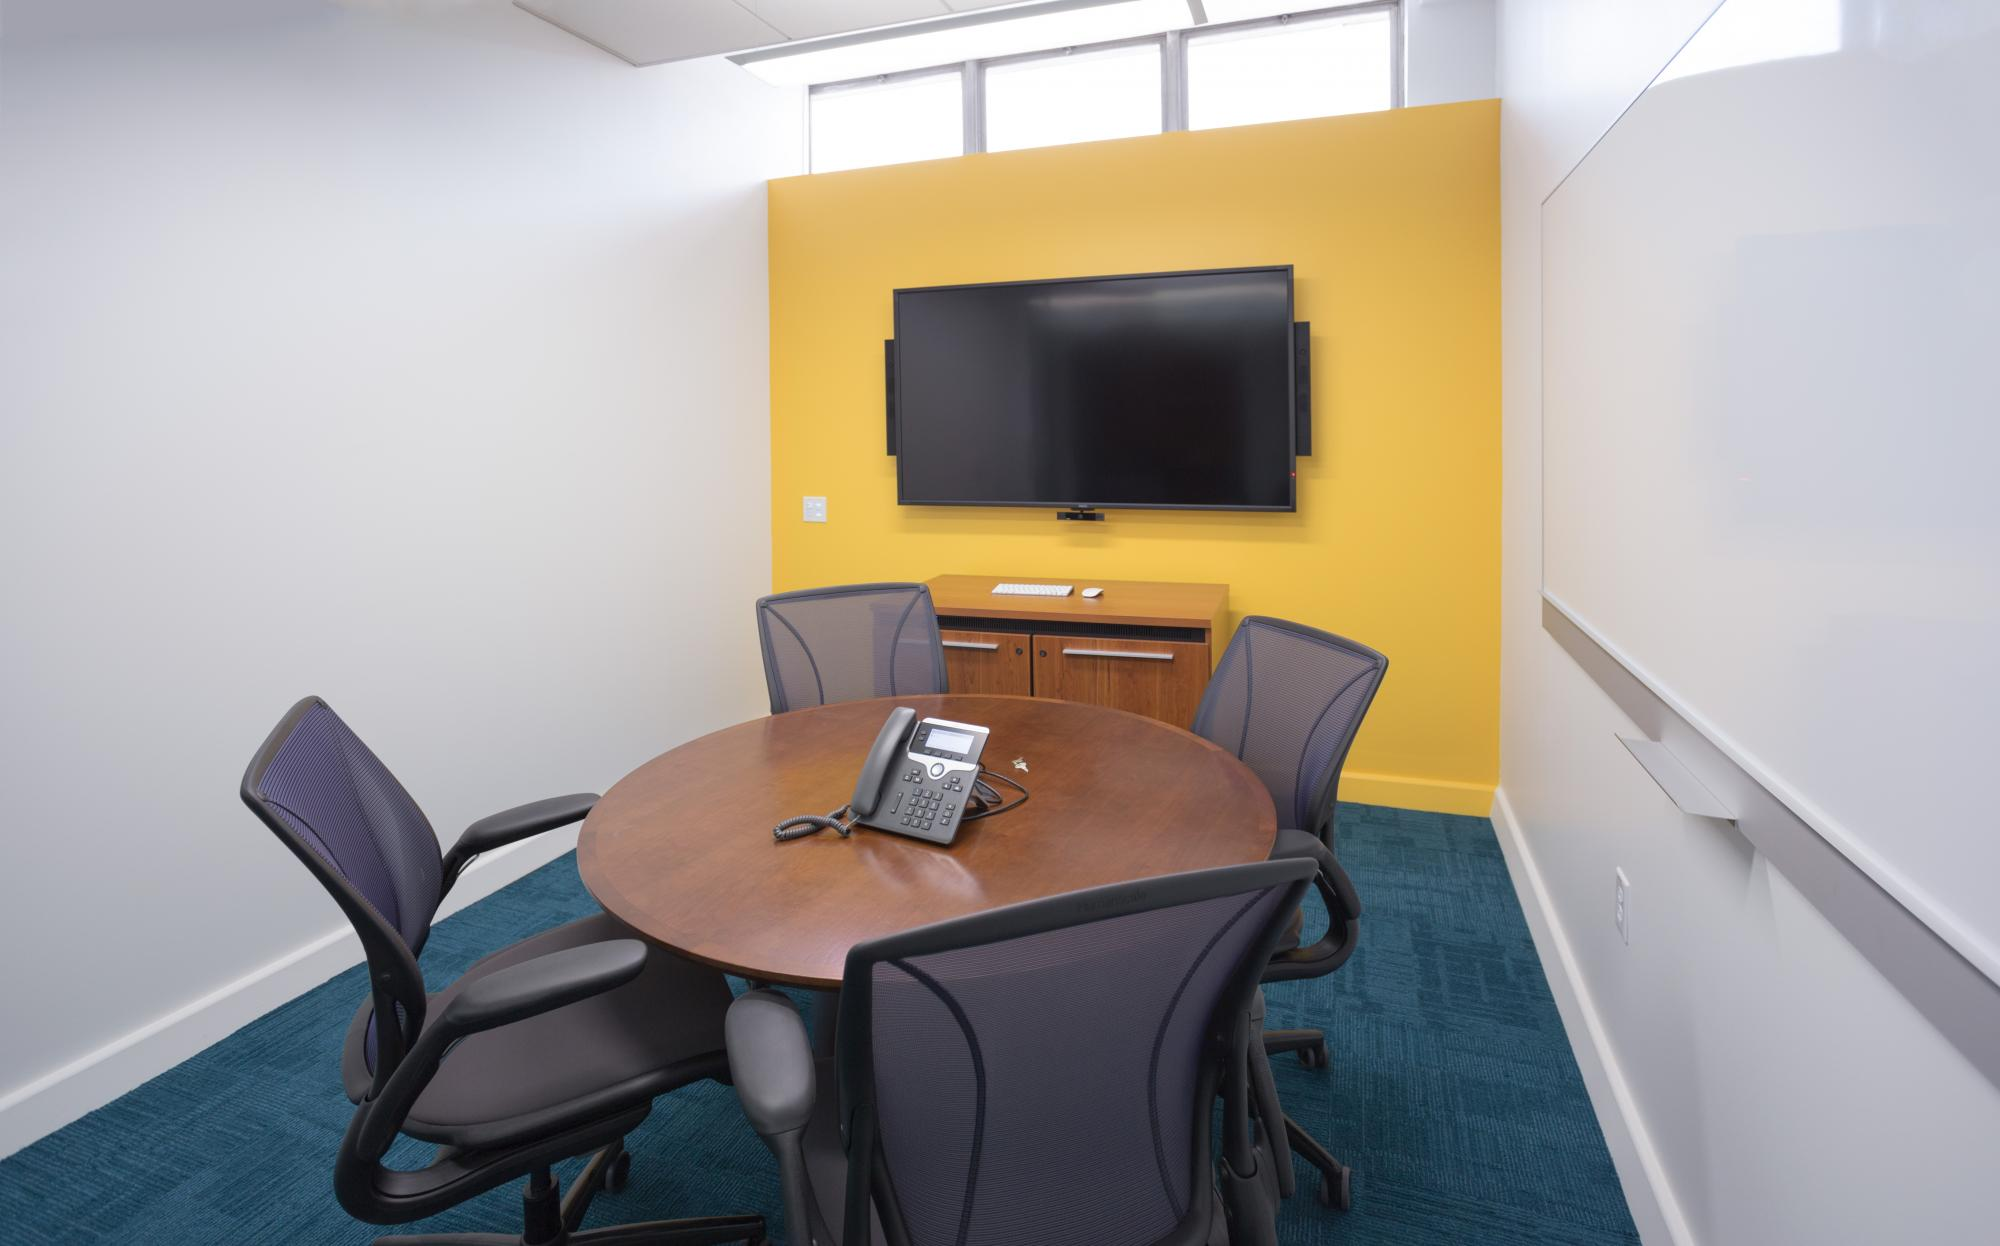 A room with a telephone, table, chairs, wall mounted screen, and whiteboard